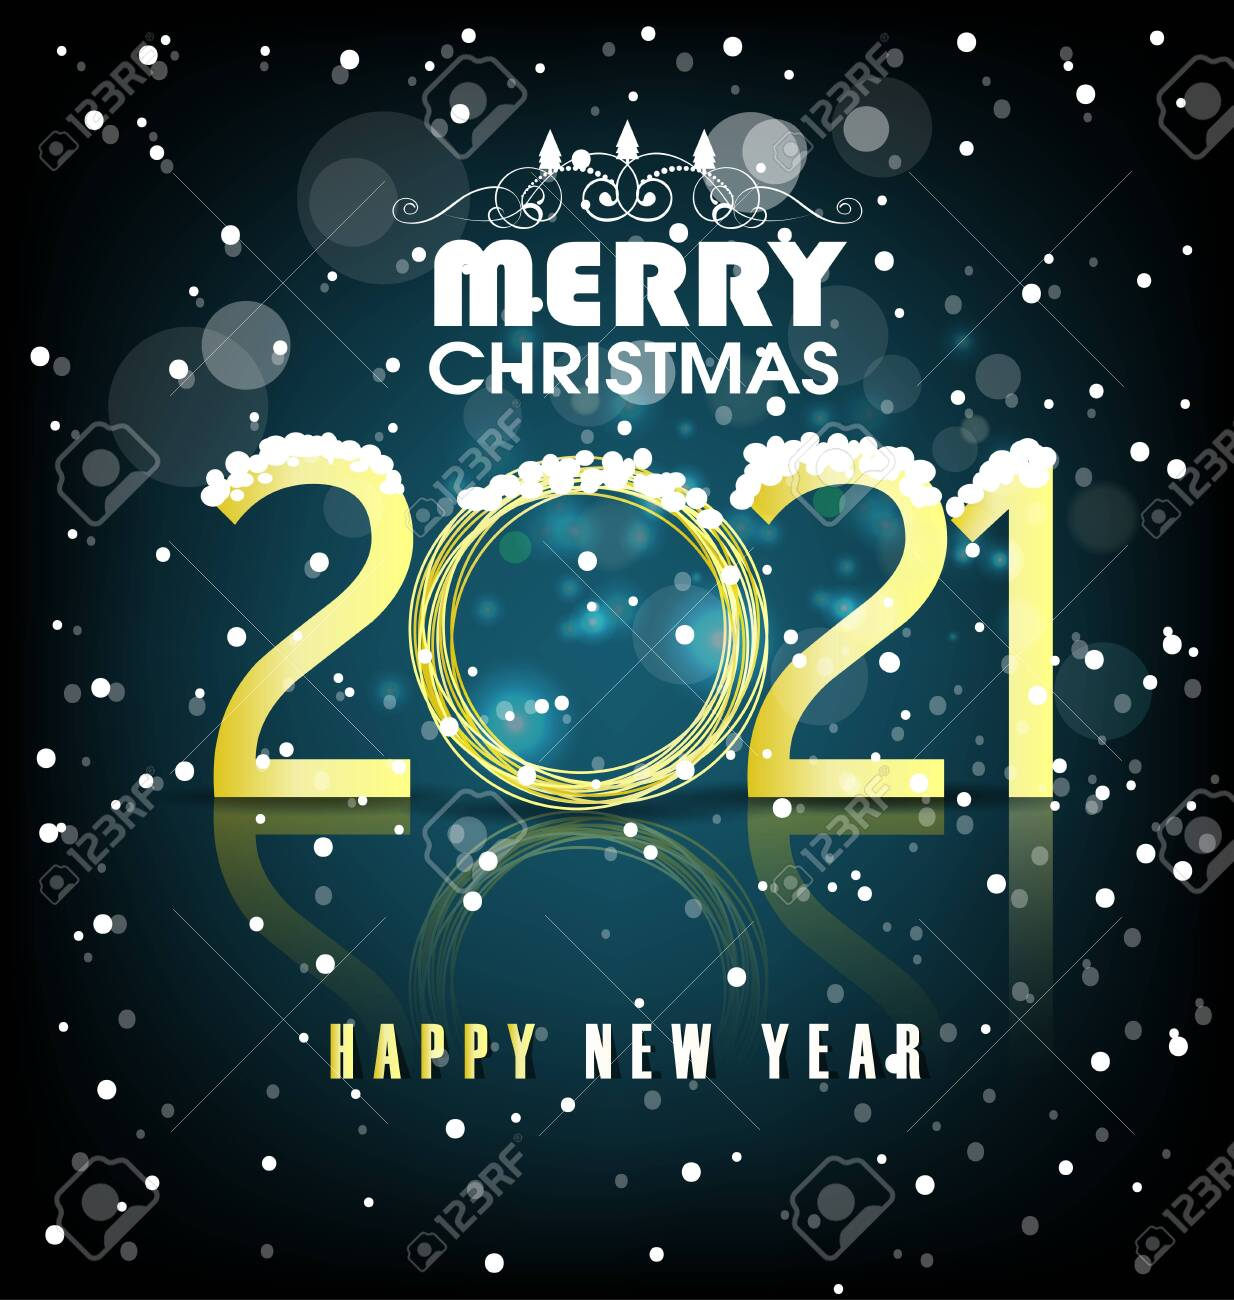 happy new year and merry christmas 2021 royalty free cliparts vectors and stock illustration image 144438762 happy new year and merry christmas 2021